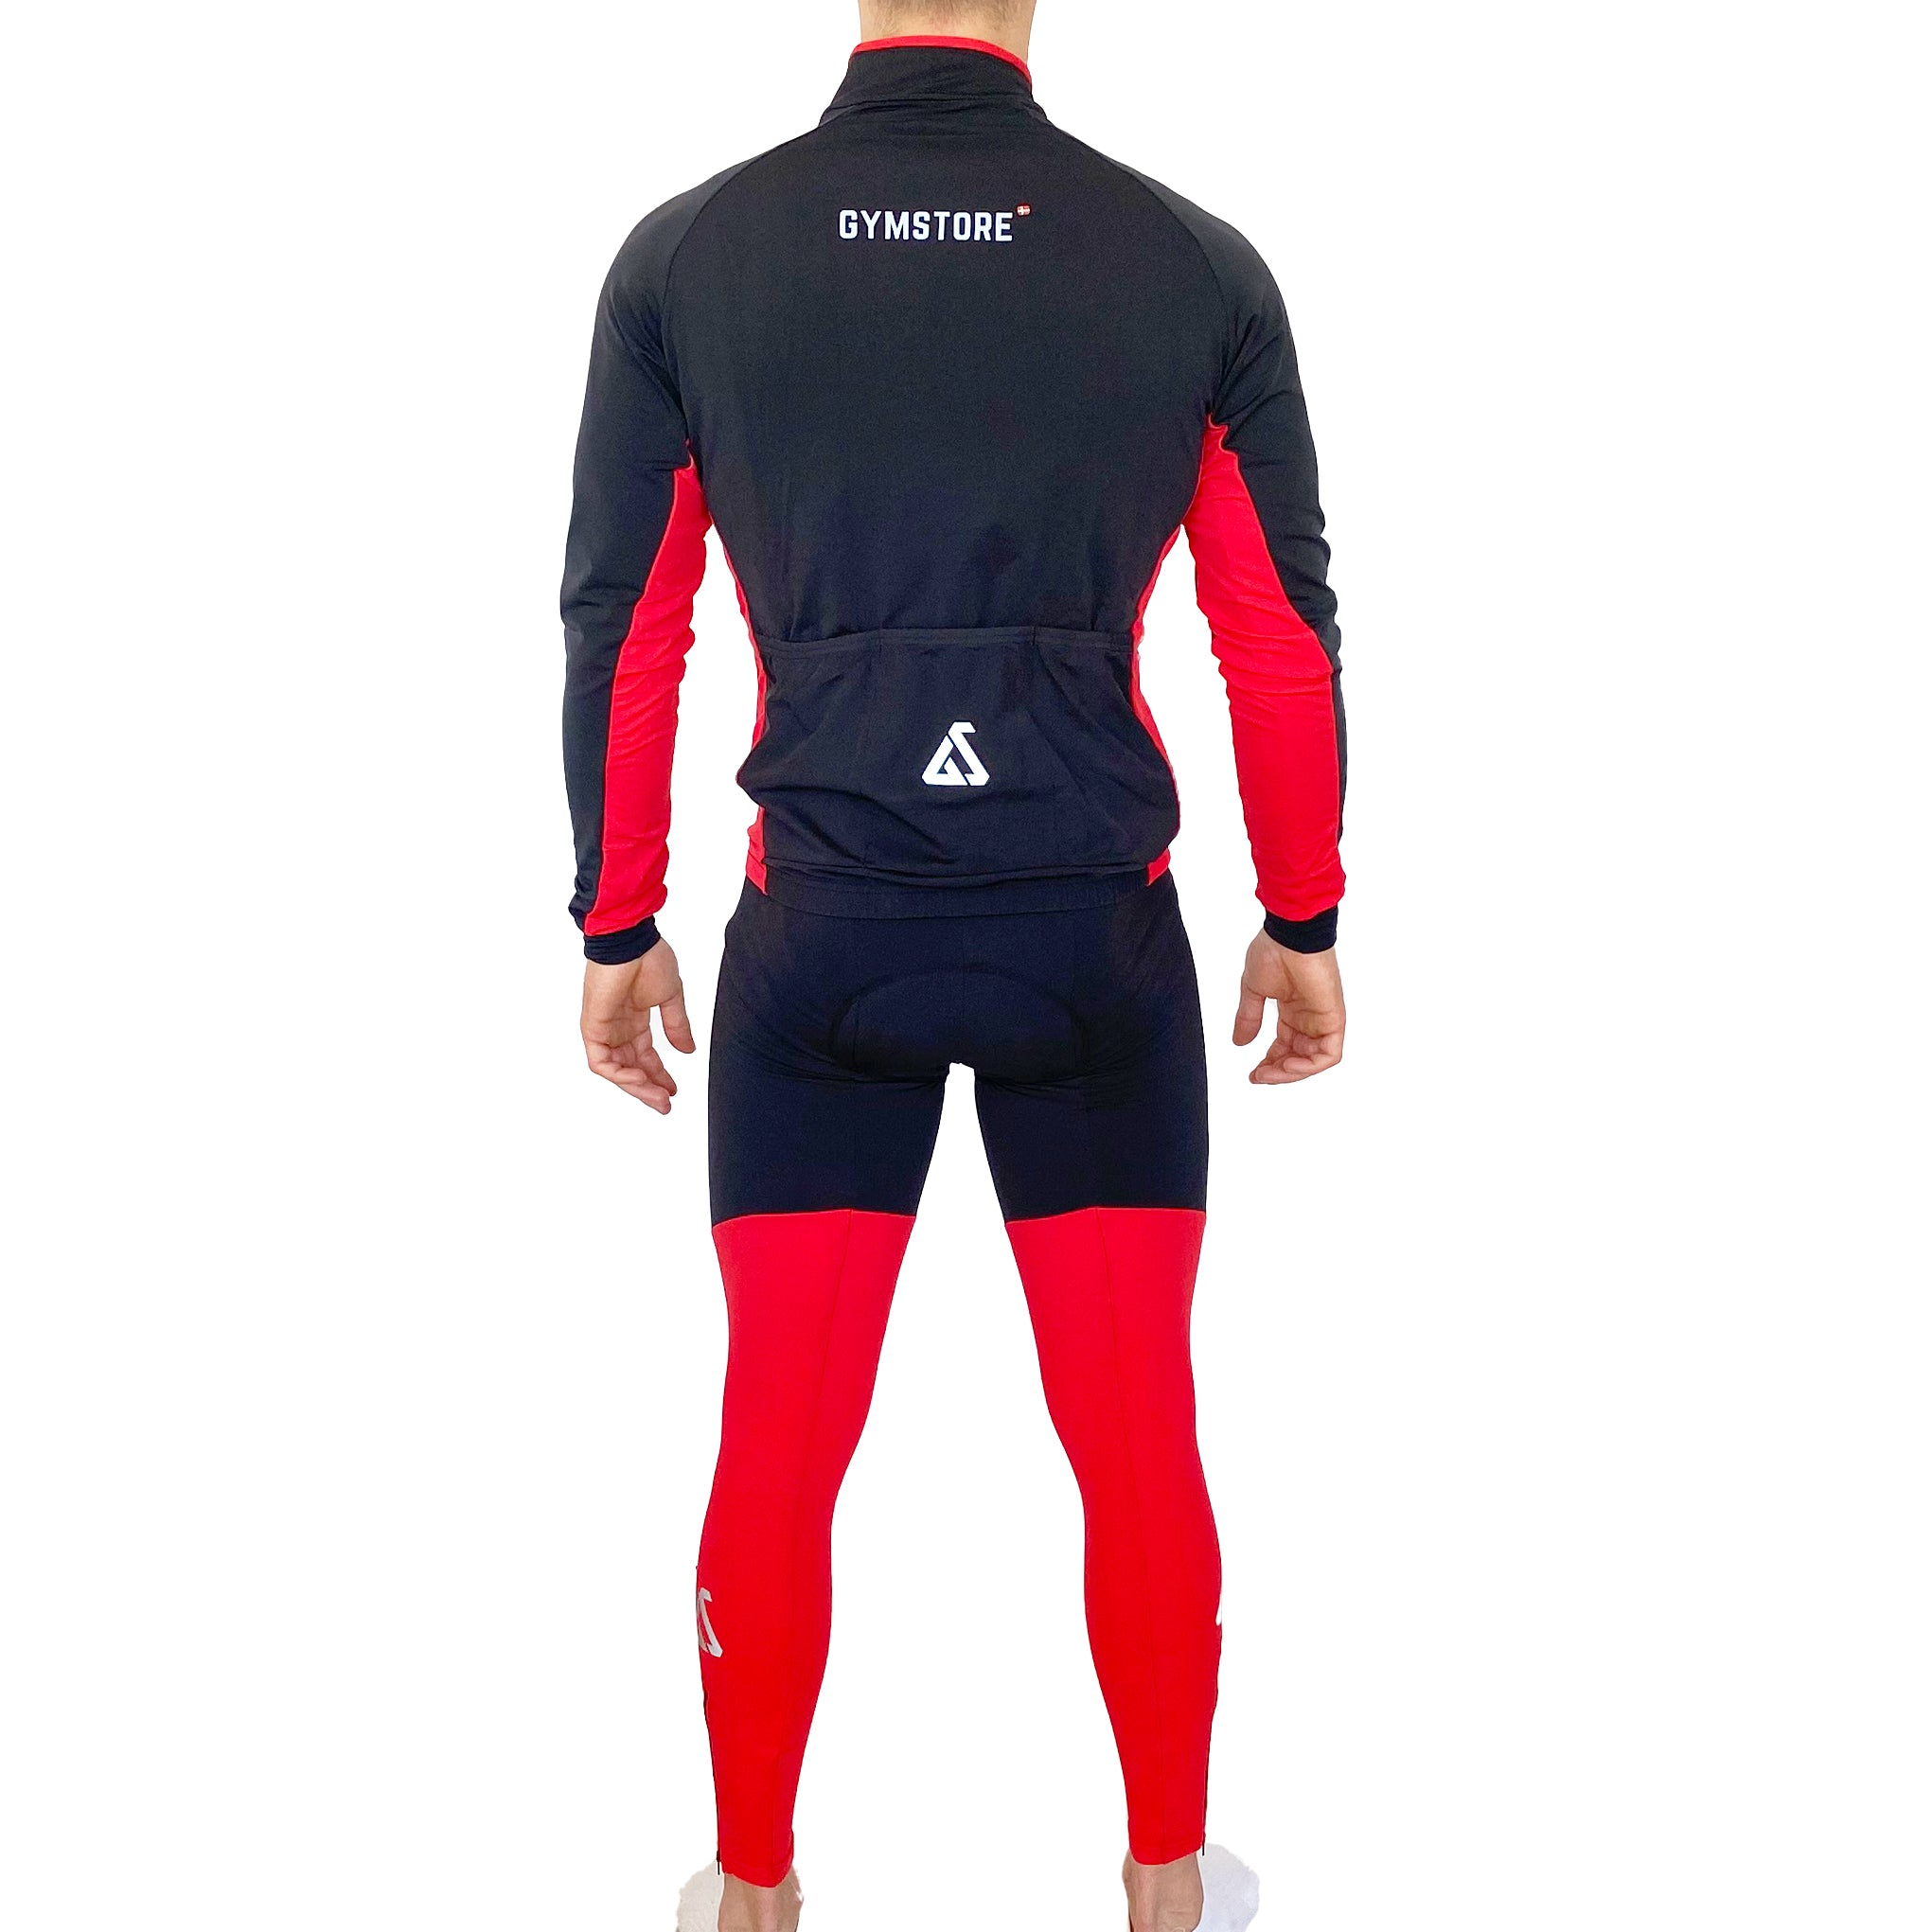 Gymstore Red/Black Cycling Long Bib